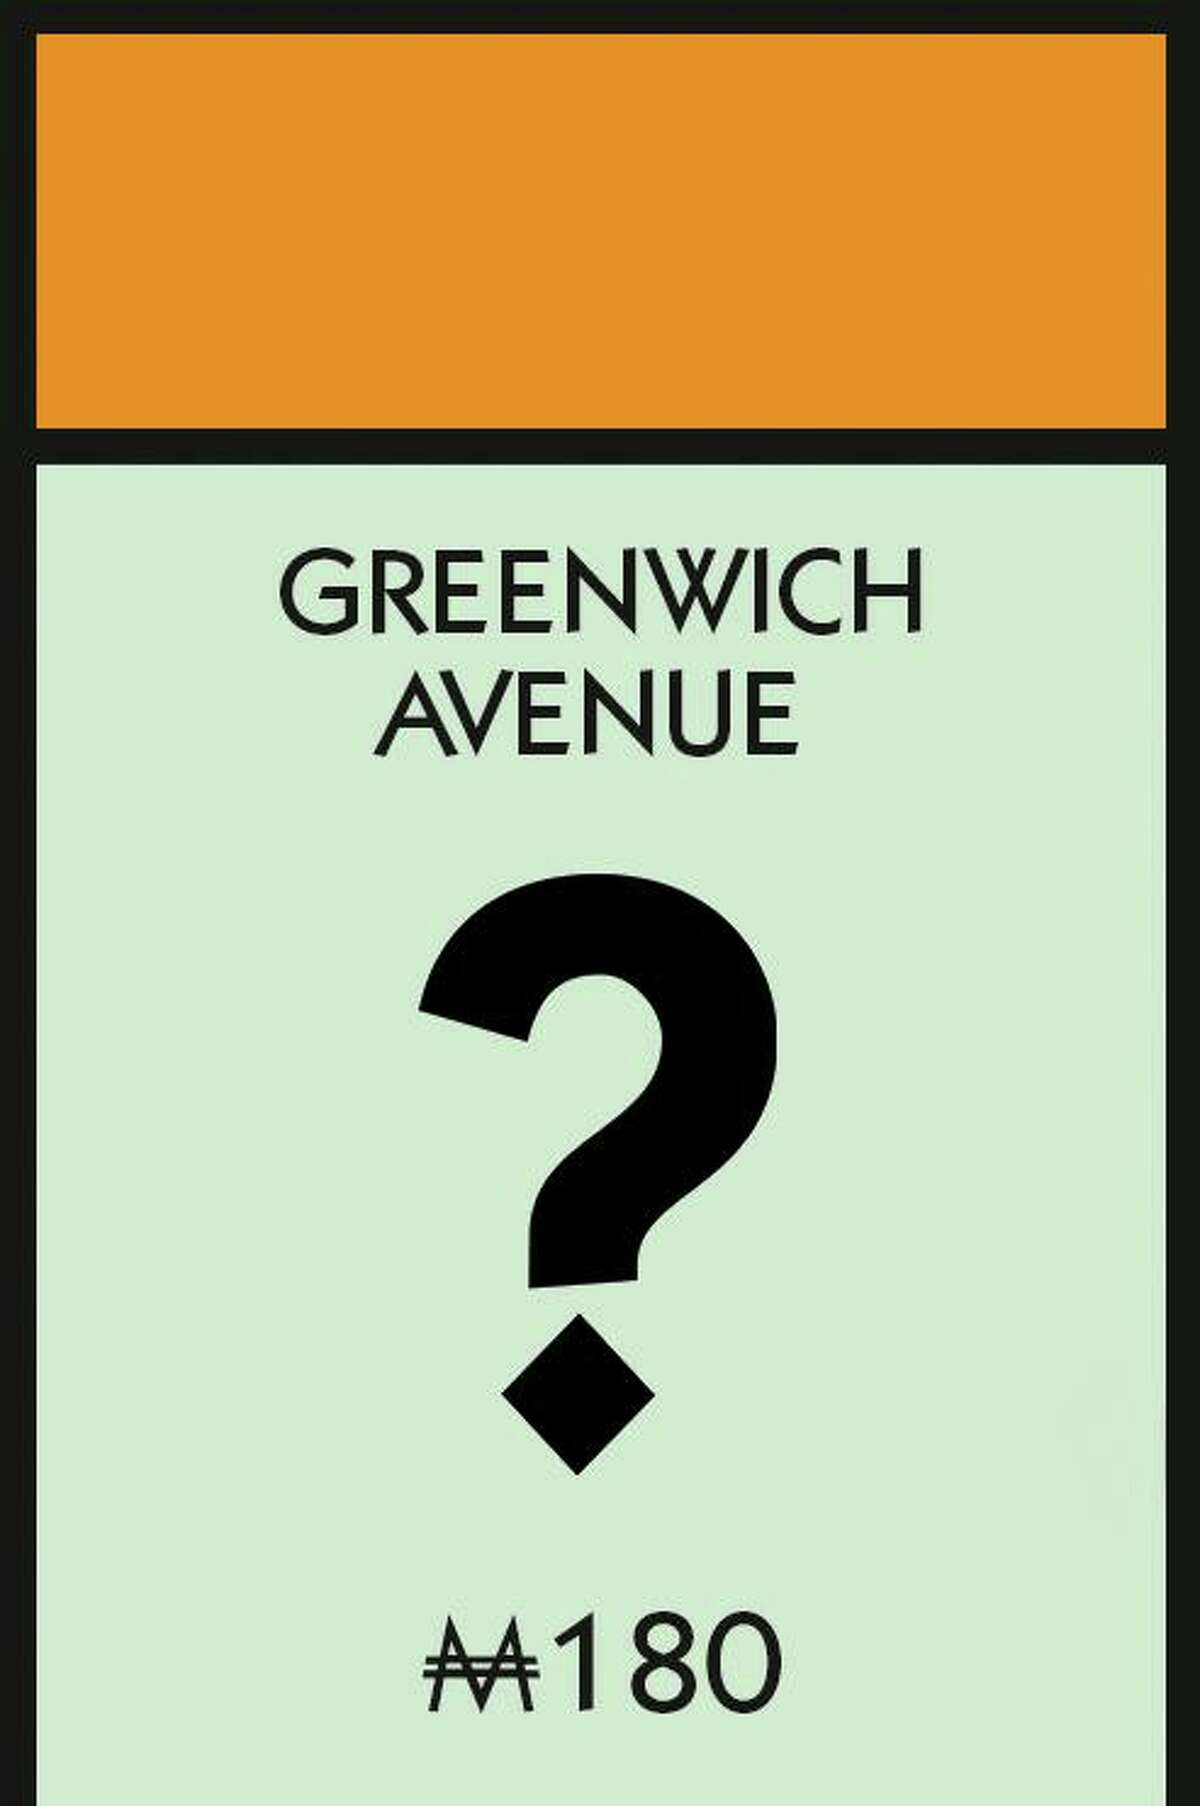 Monopoly is coming to Greenwich.